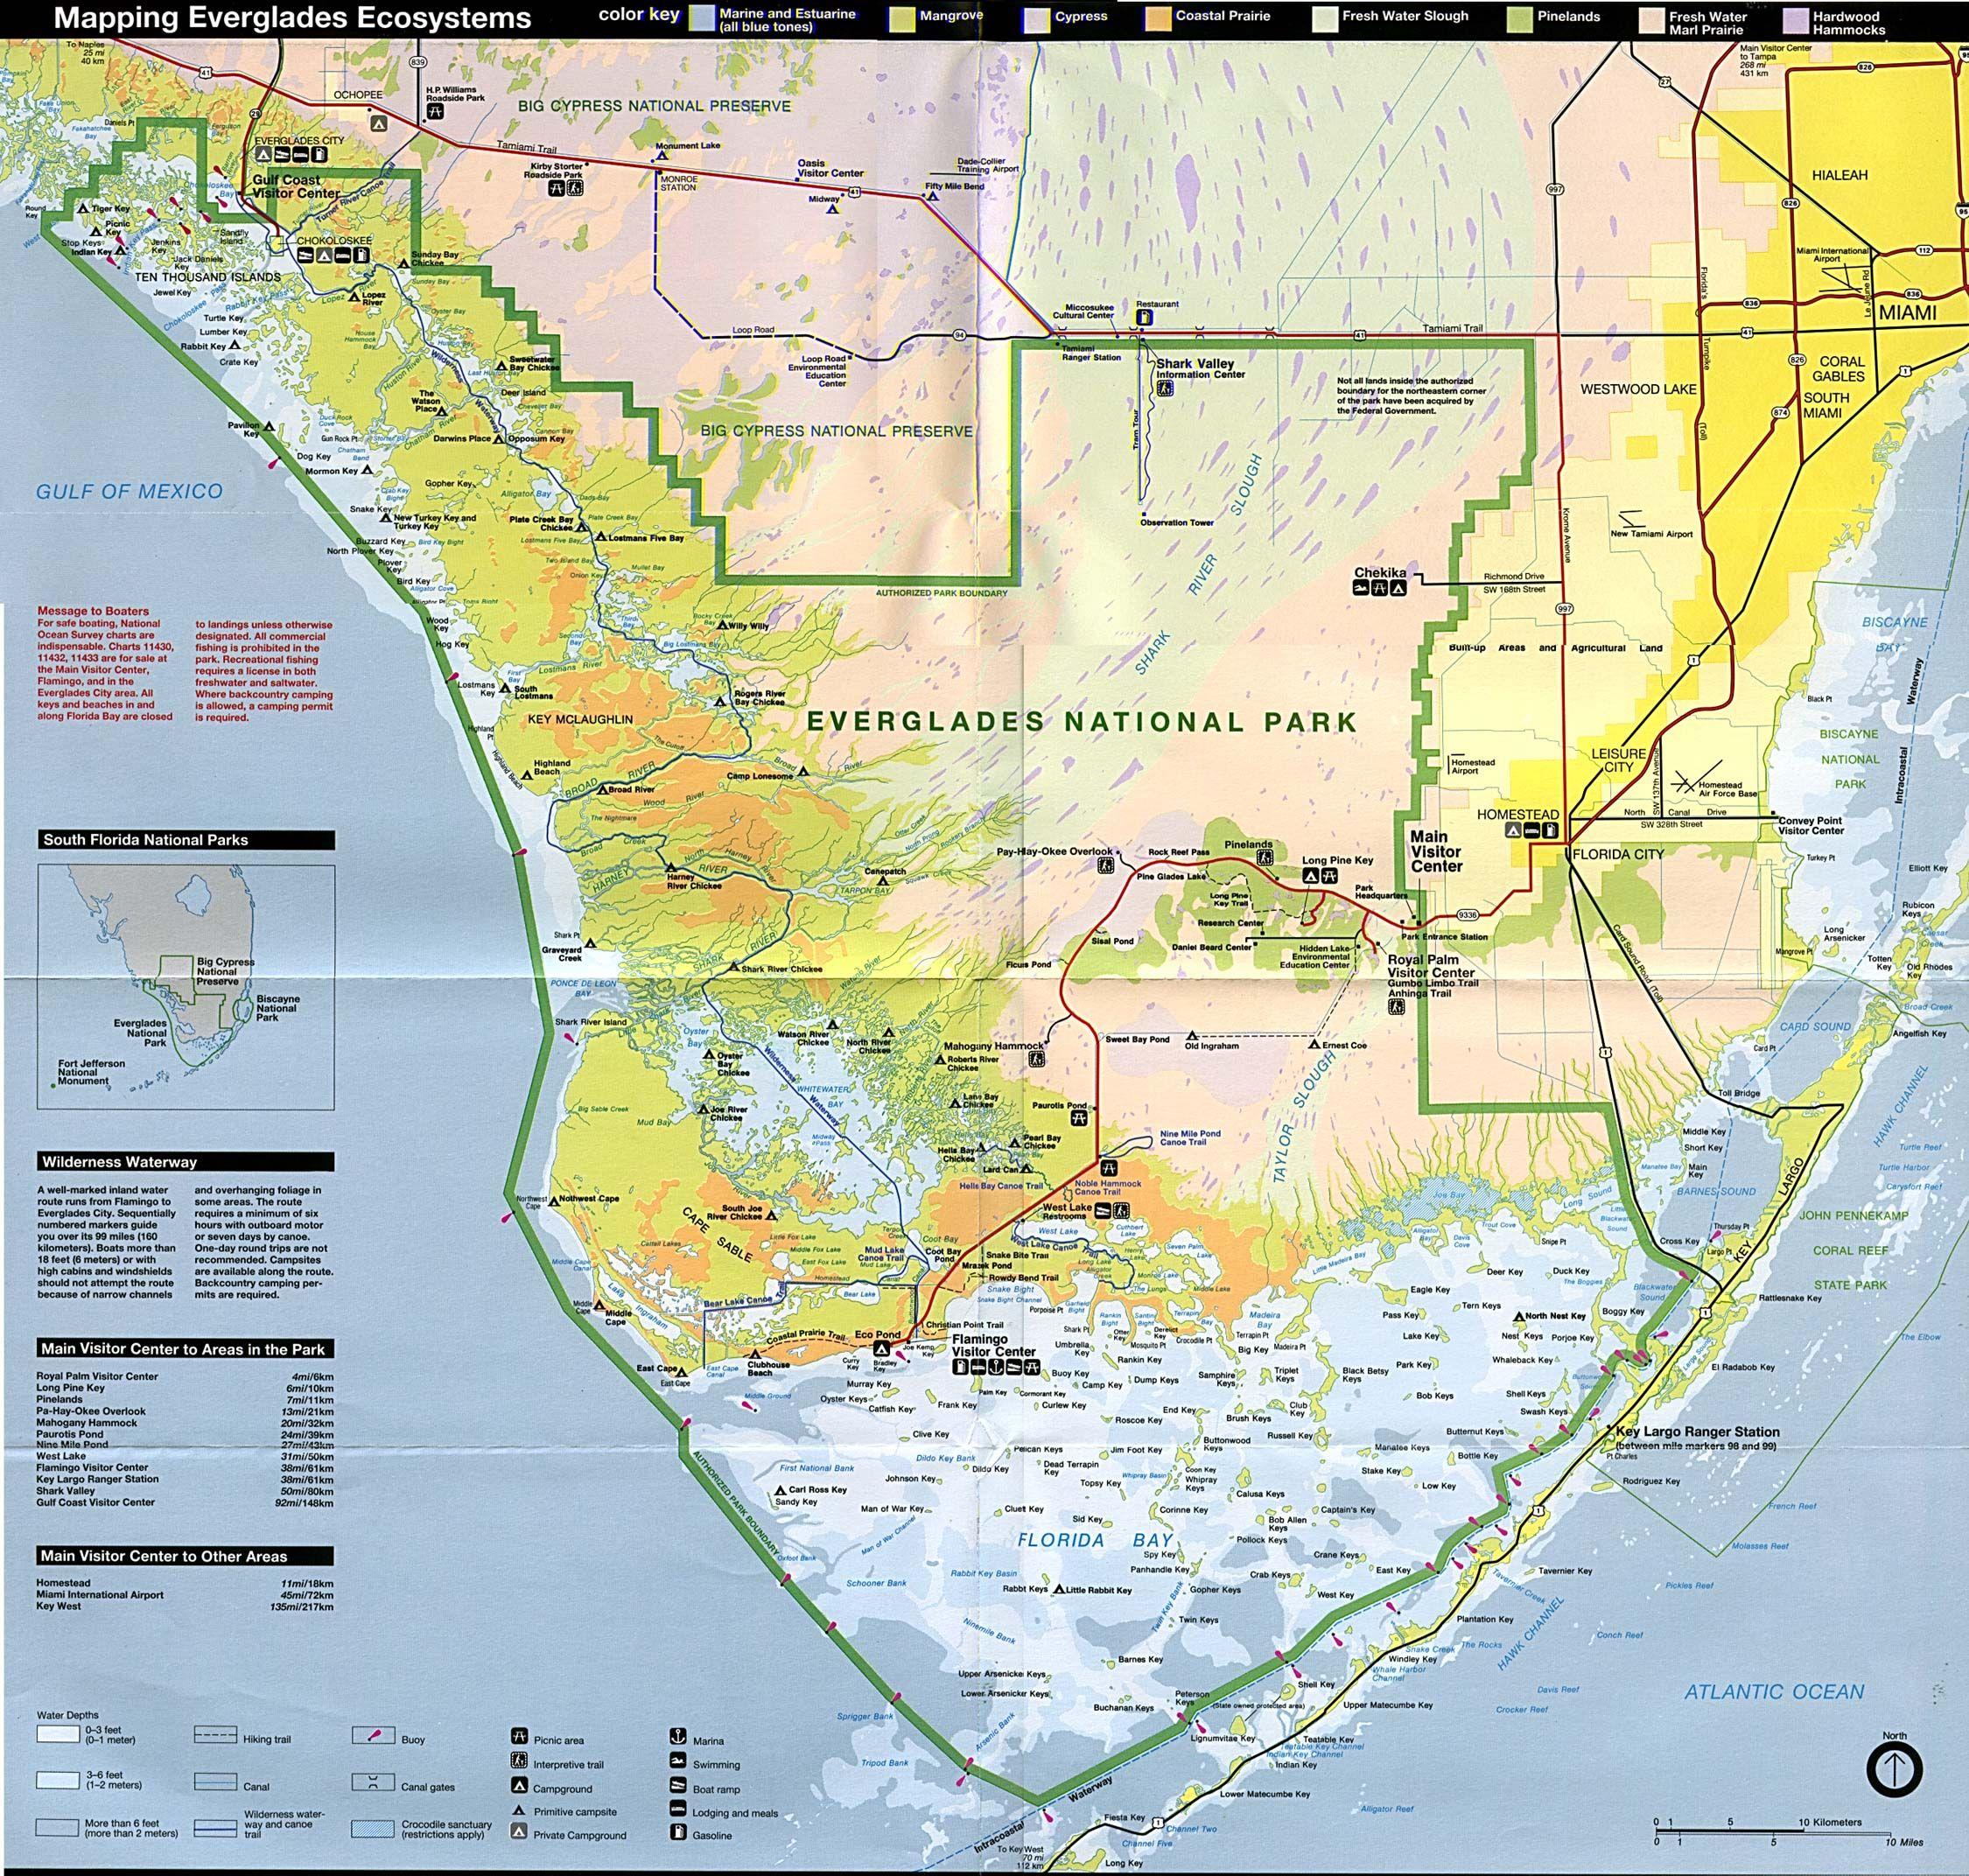 Everglades National Park Ecosystems Map Florida United States go